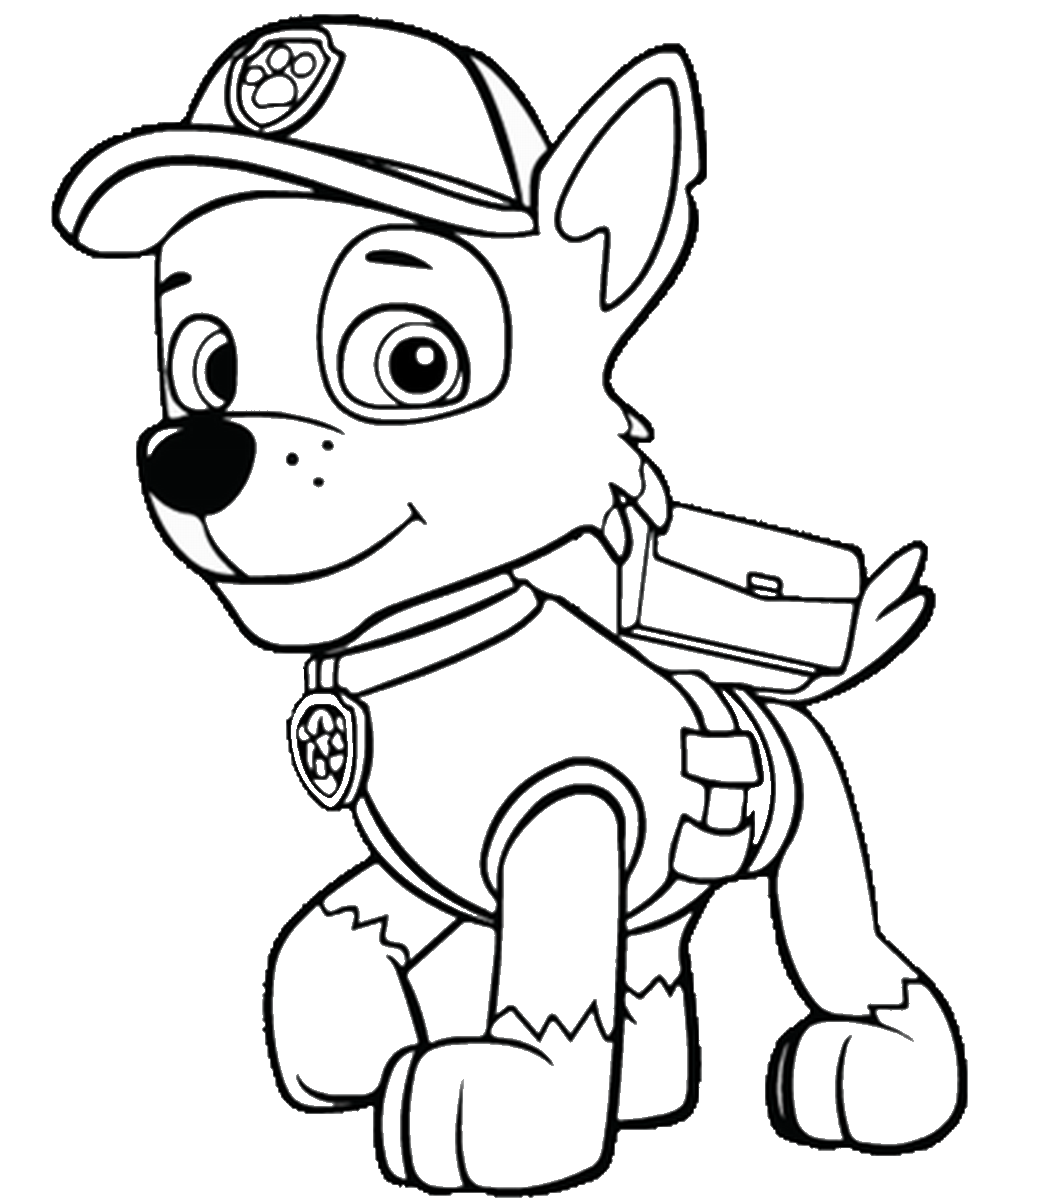 print coloring sheets zebra coloring pages free printable kids coloring pages sheets print coloring